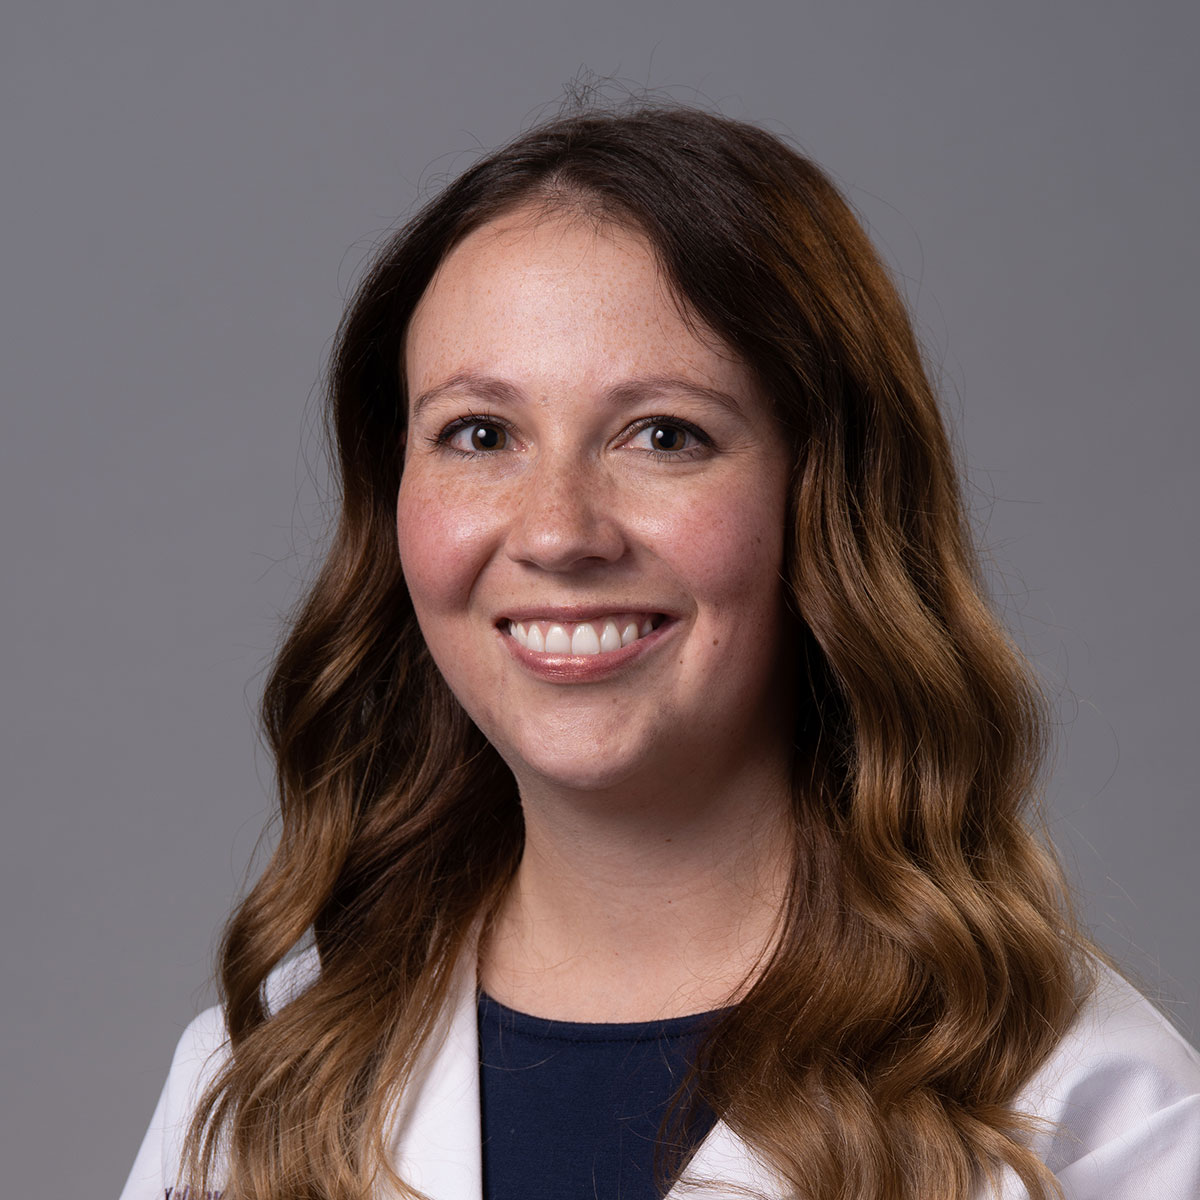 A friendly headshot of Dr. Kasey Woods